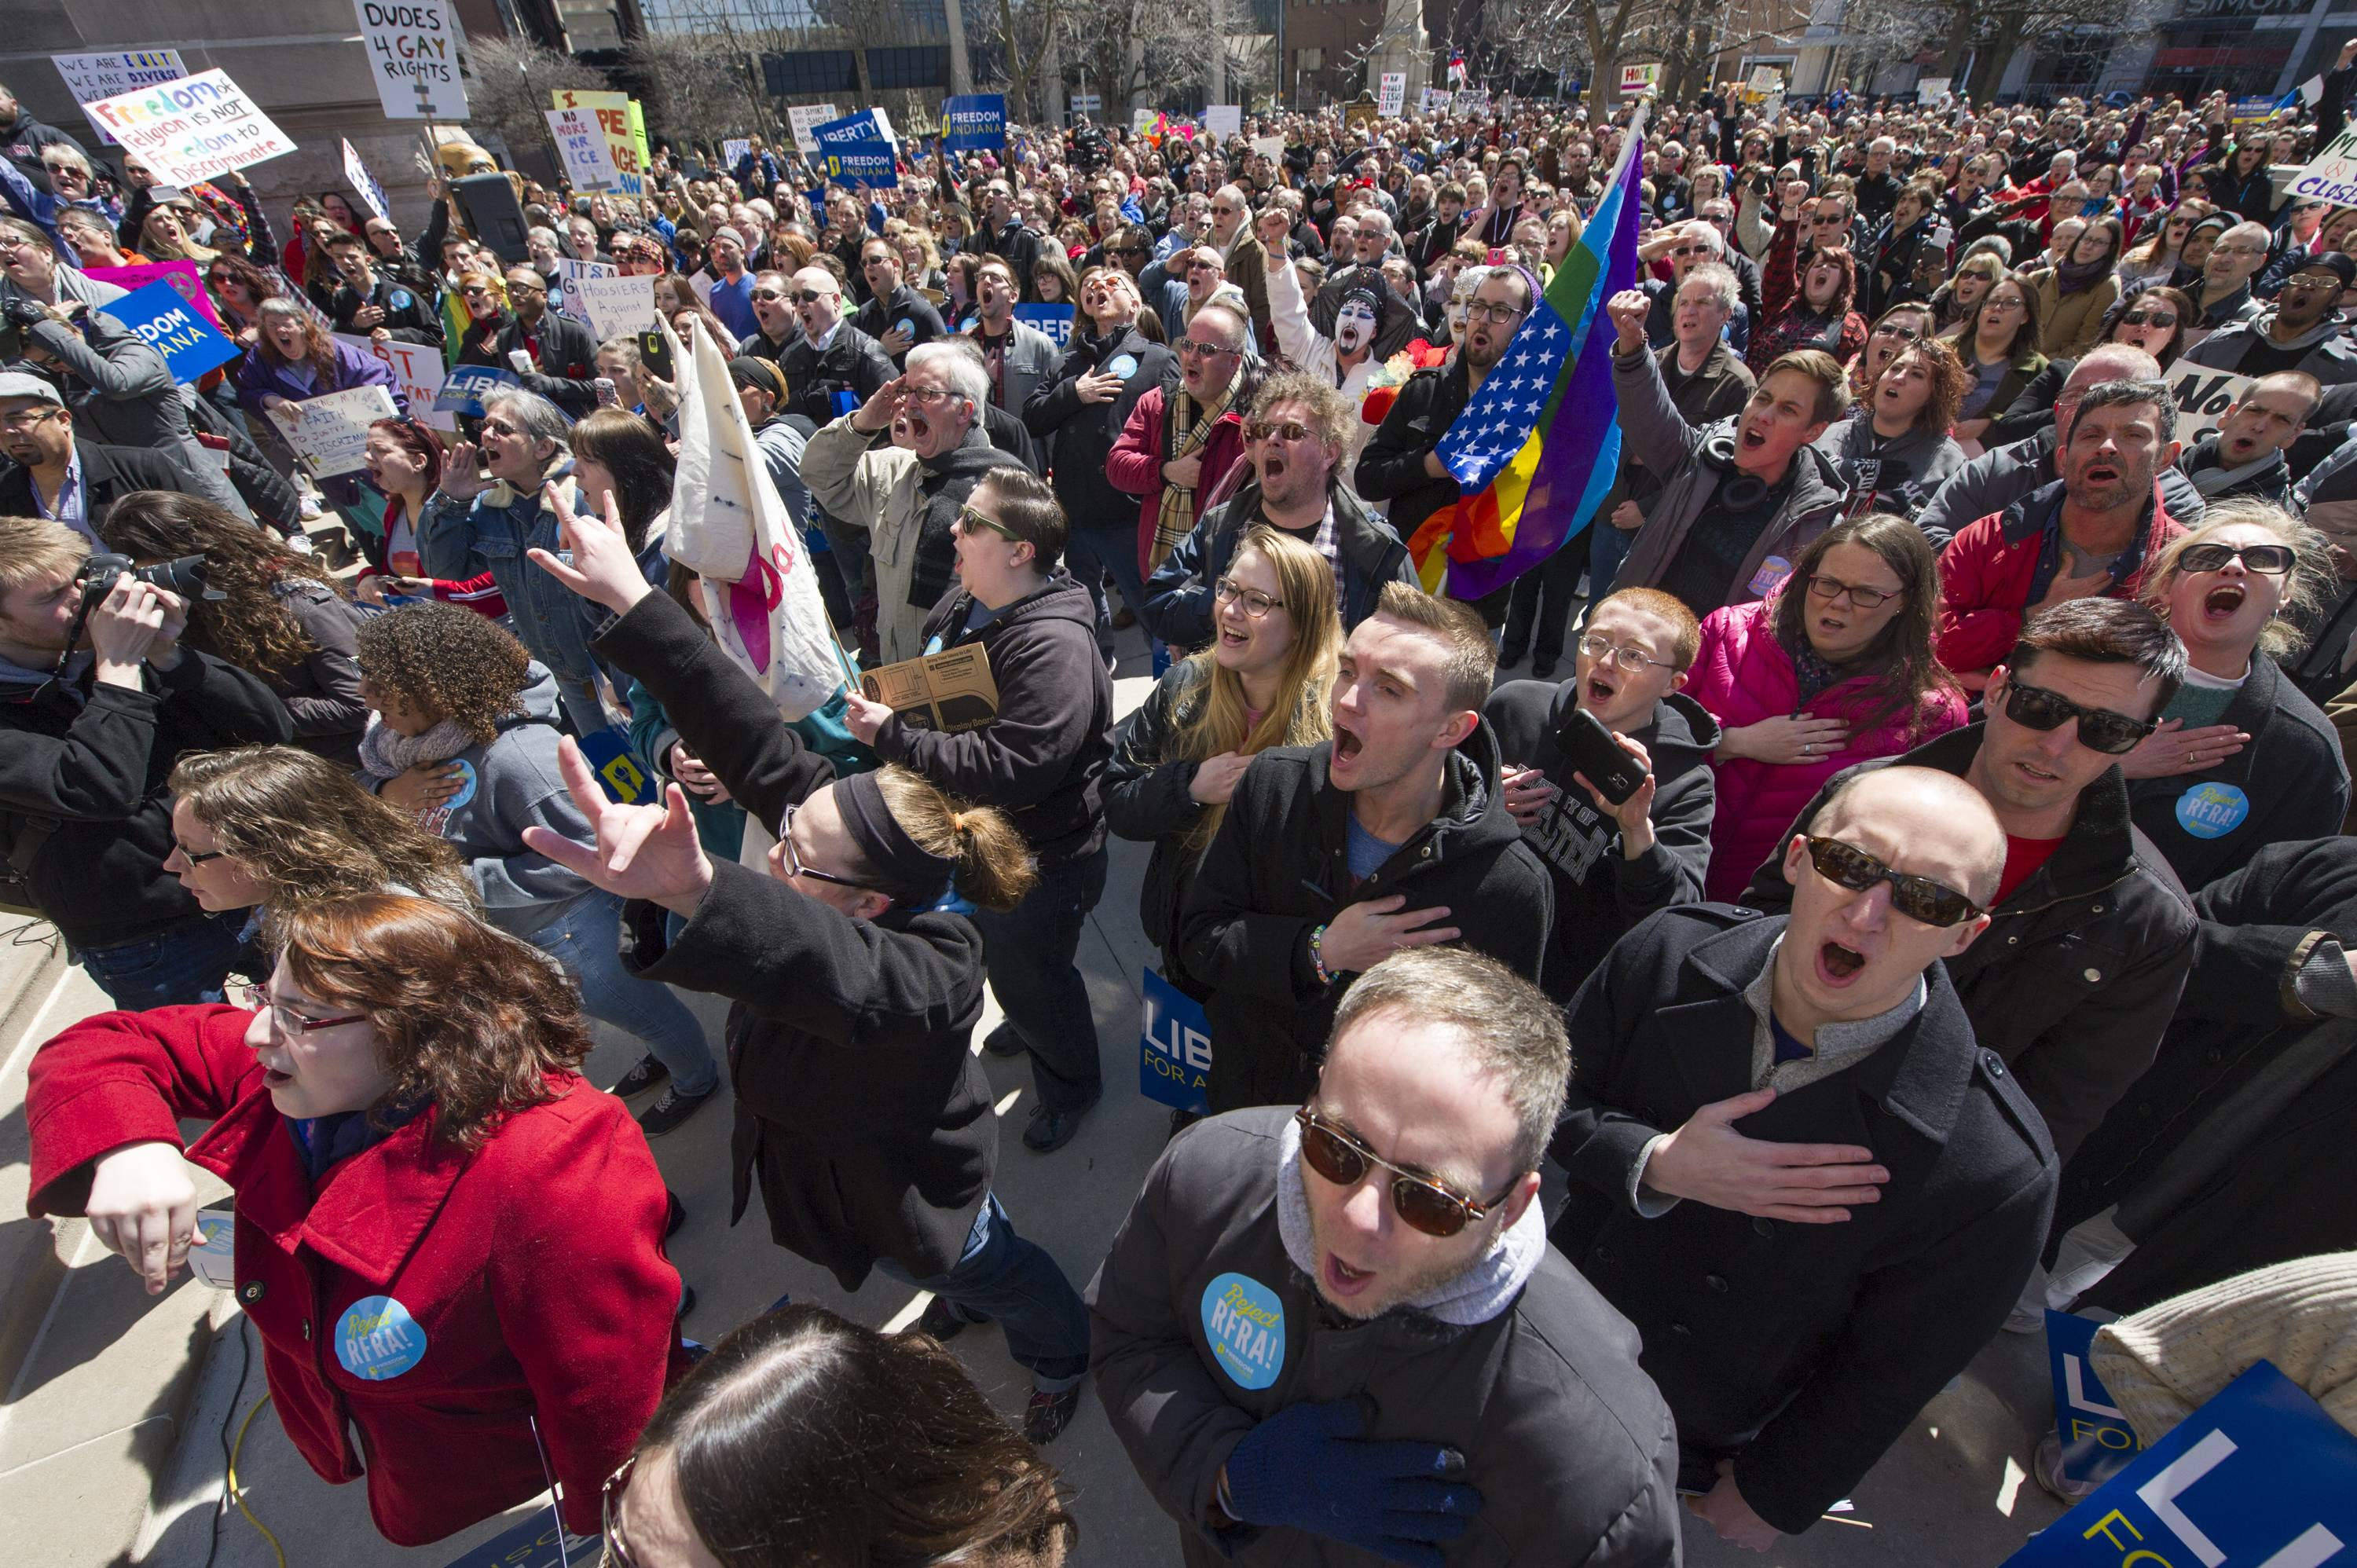 Hundreds rally against Indiana religion law